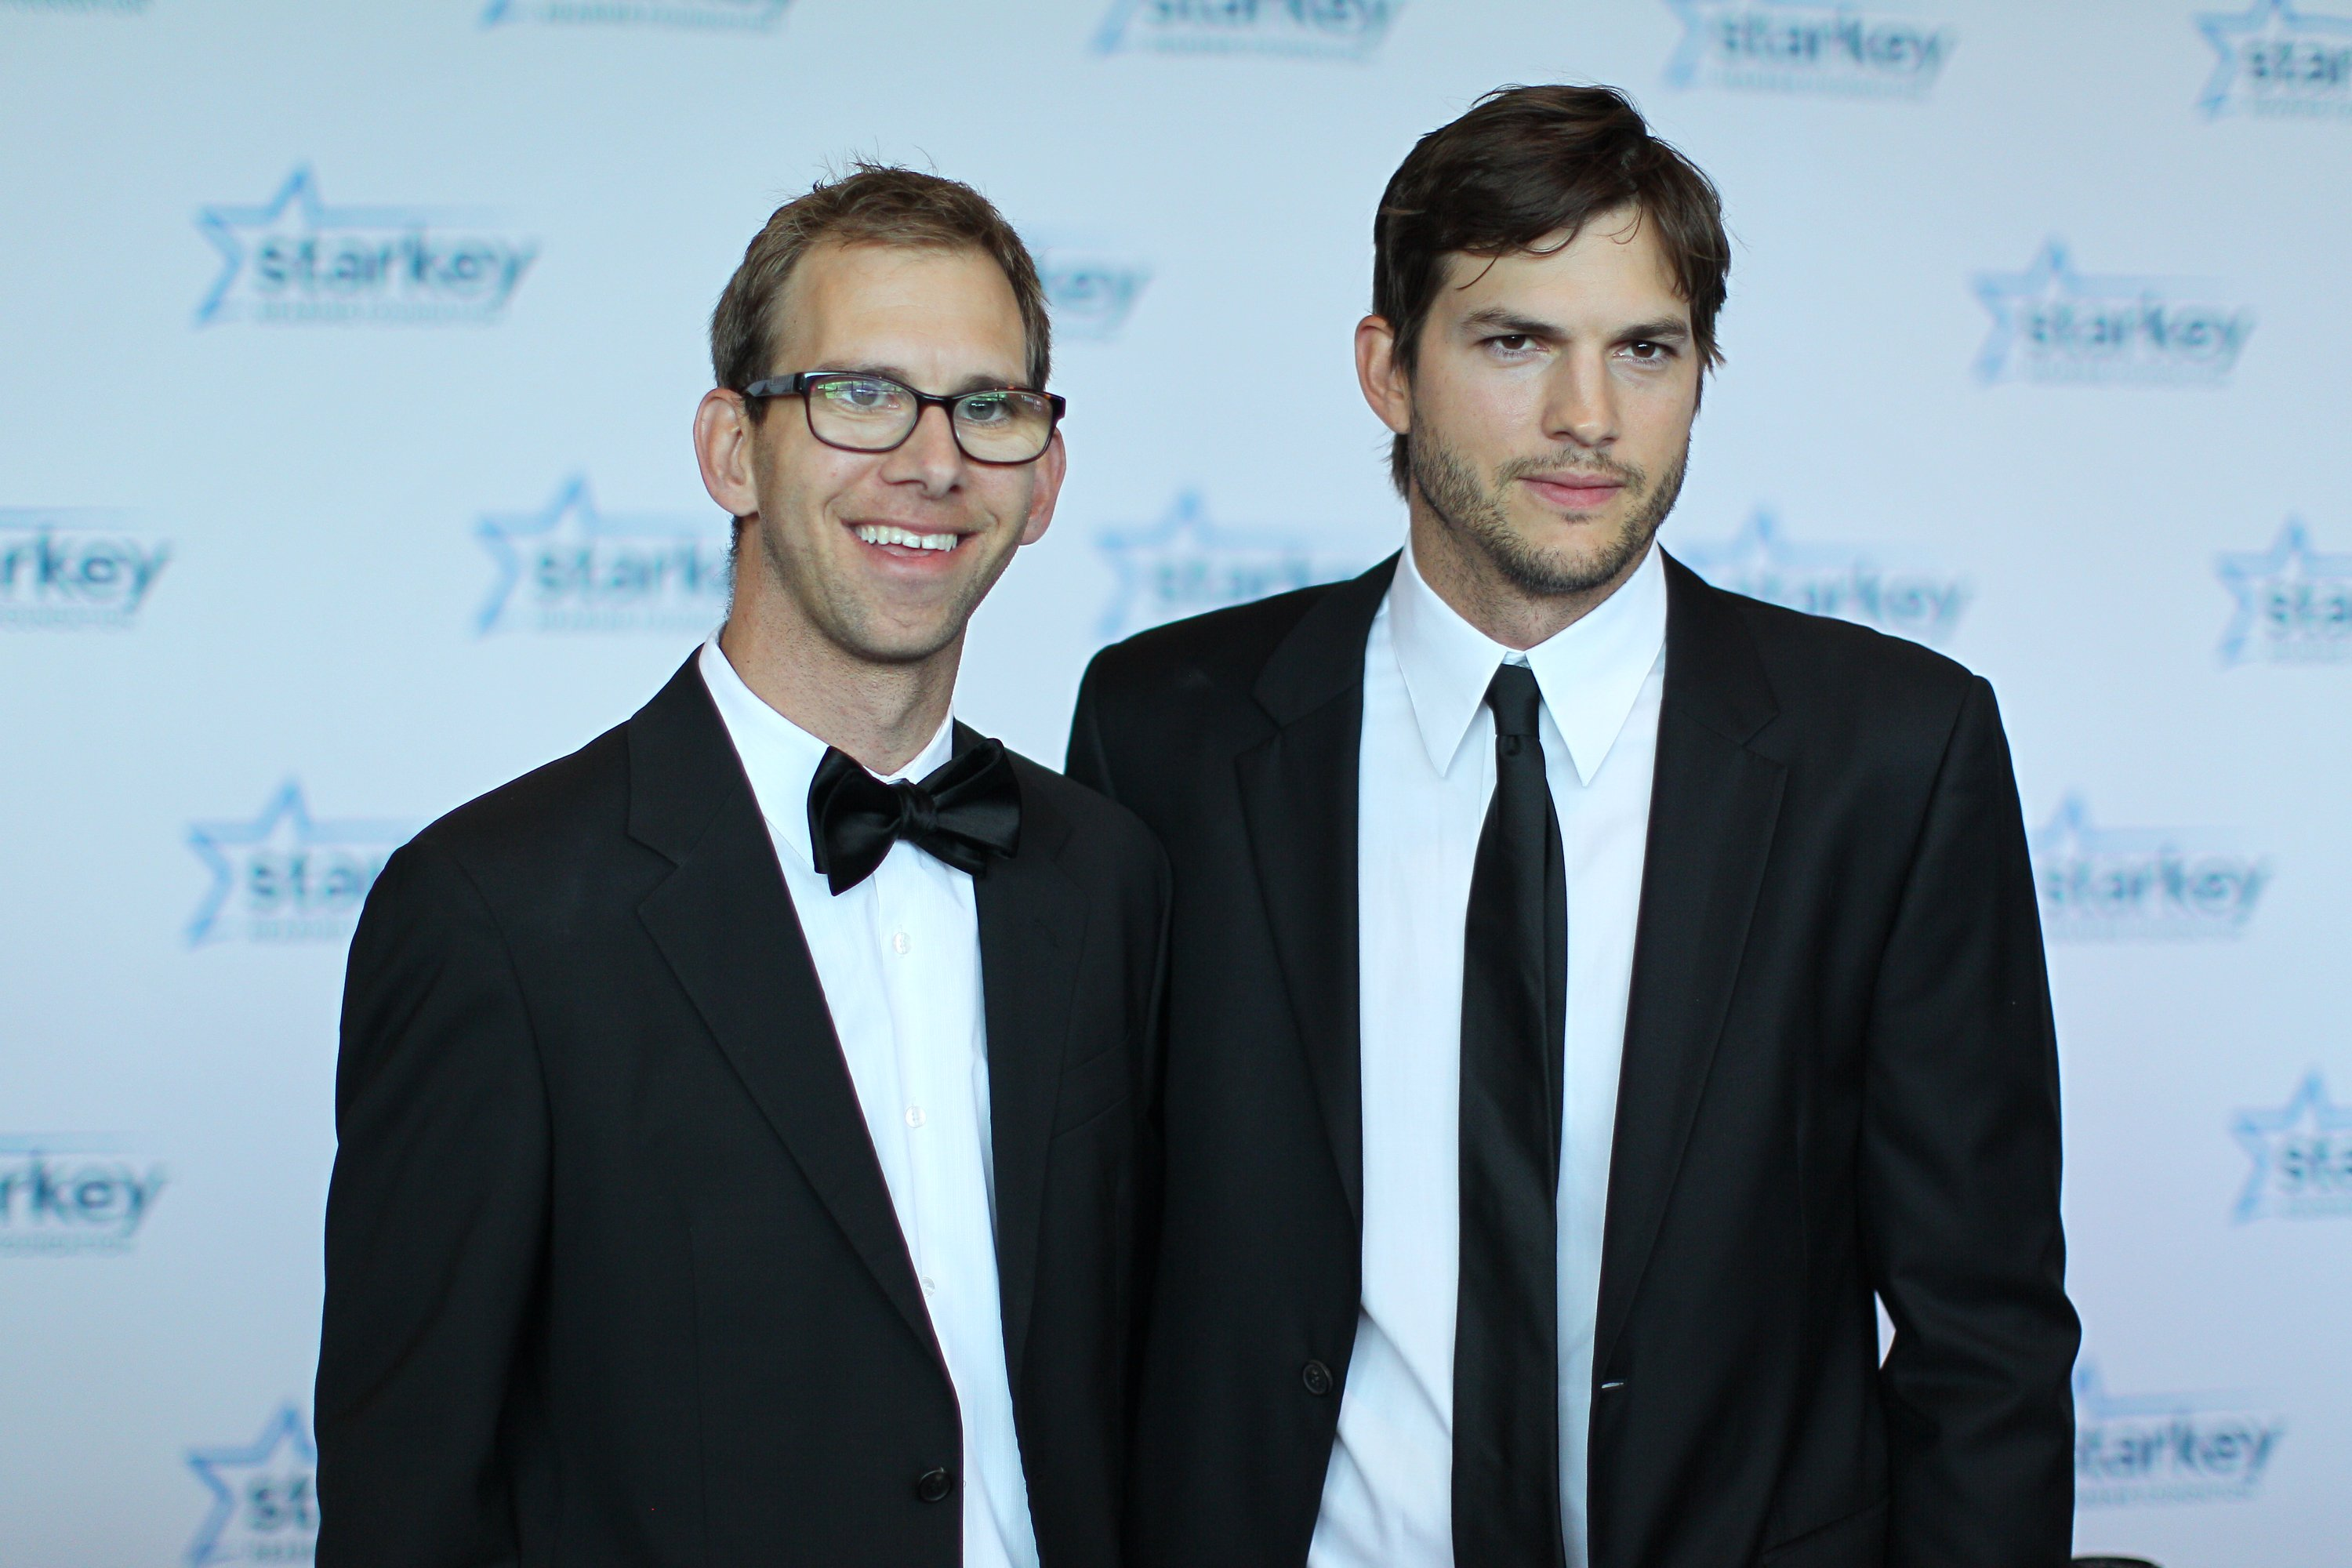 Michael Kutcher and Ashton Kutcher walk the red carpet on July 28, 2013 in St. Paul, Minnesota   Photo: Getty Images